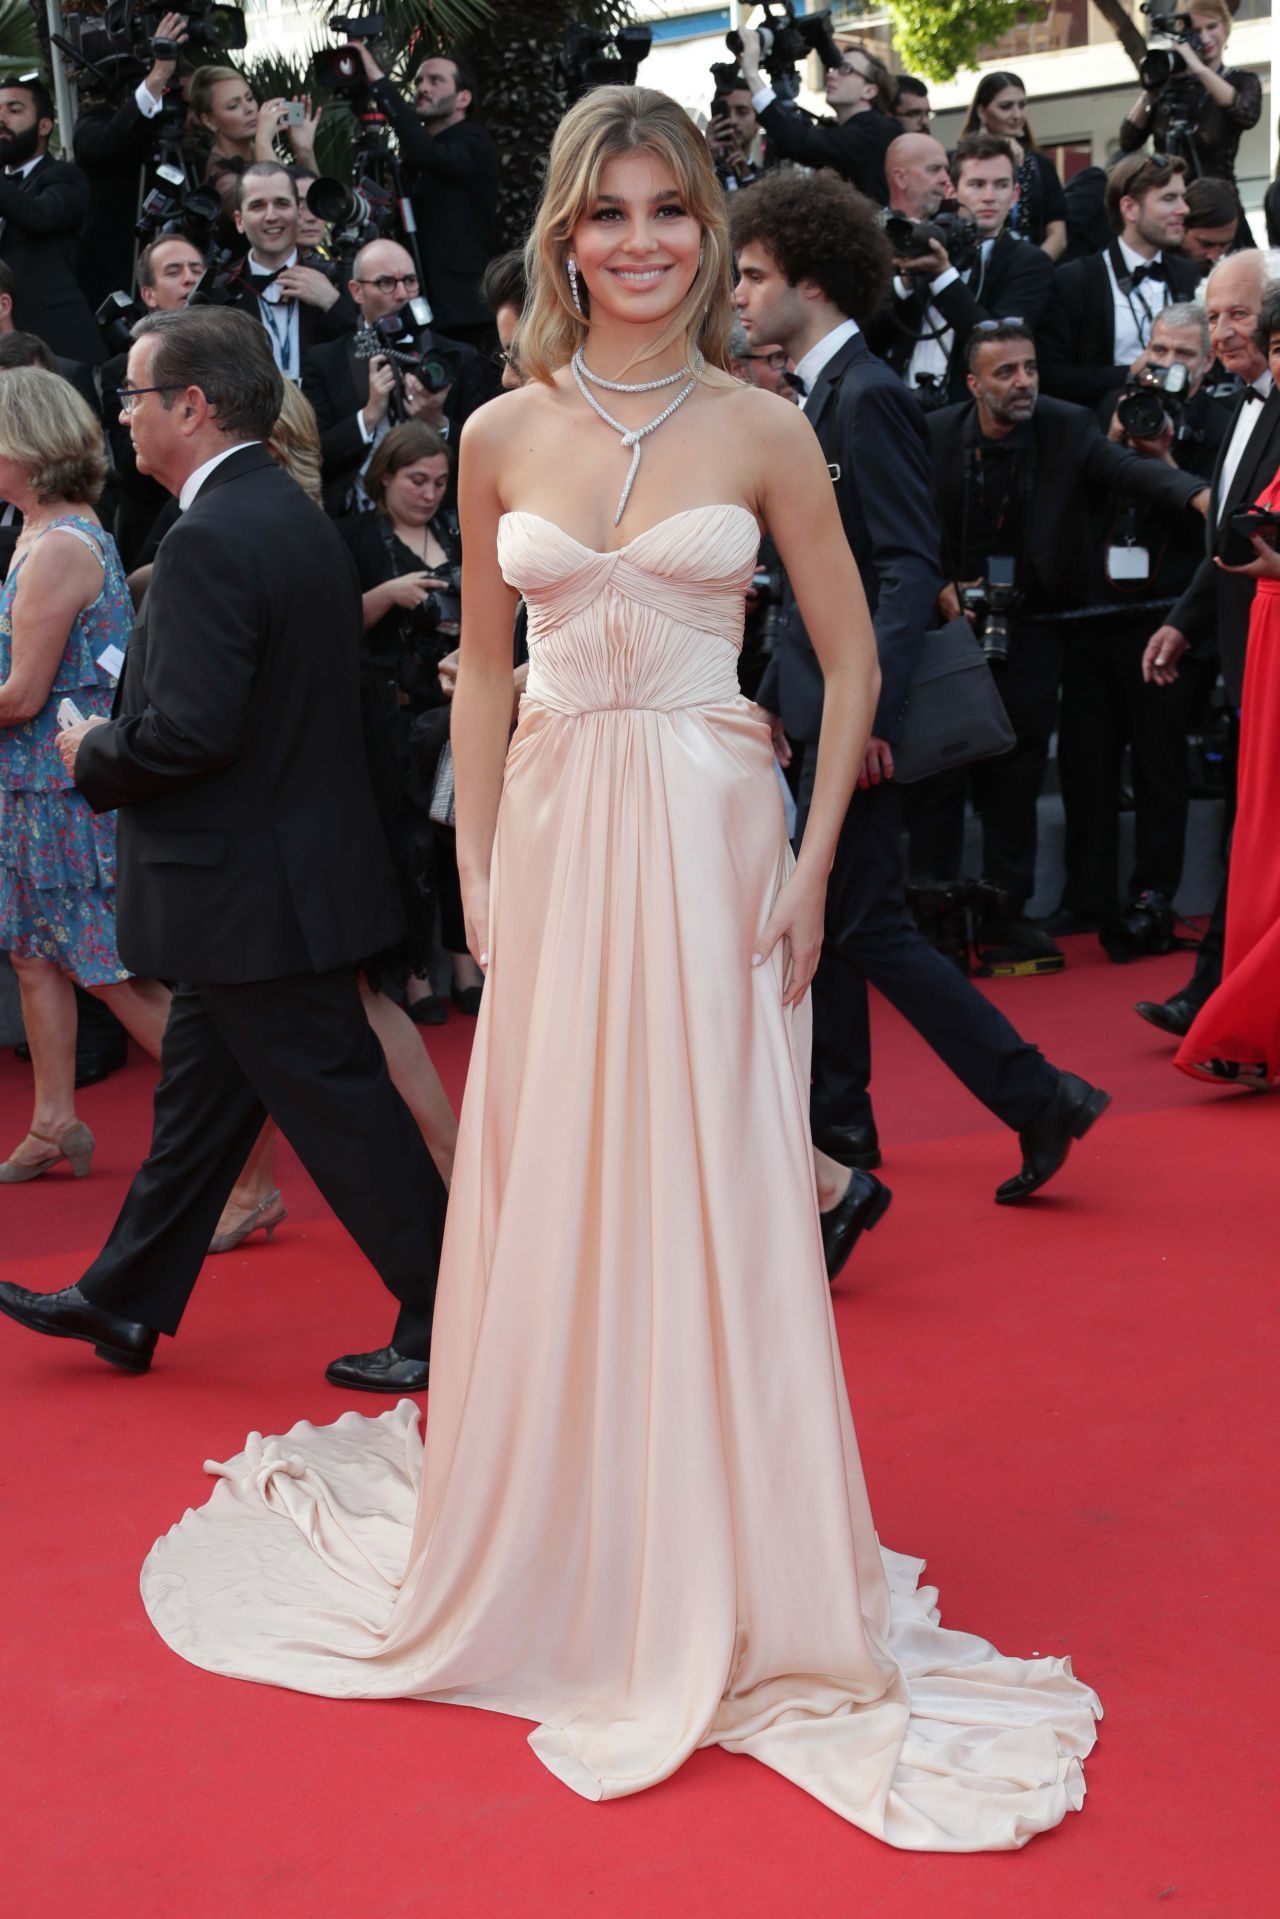 Camila Morrone The Beguiled Premiere At Cannes Film